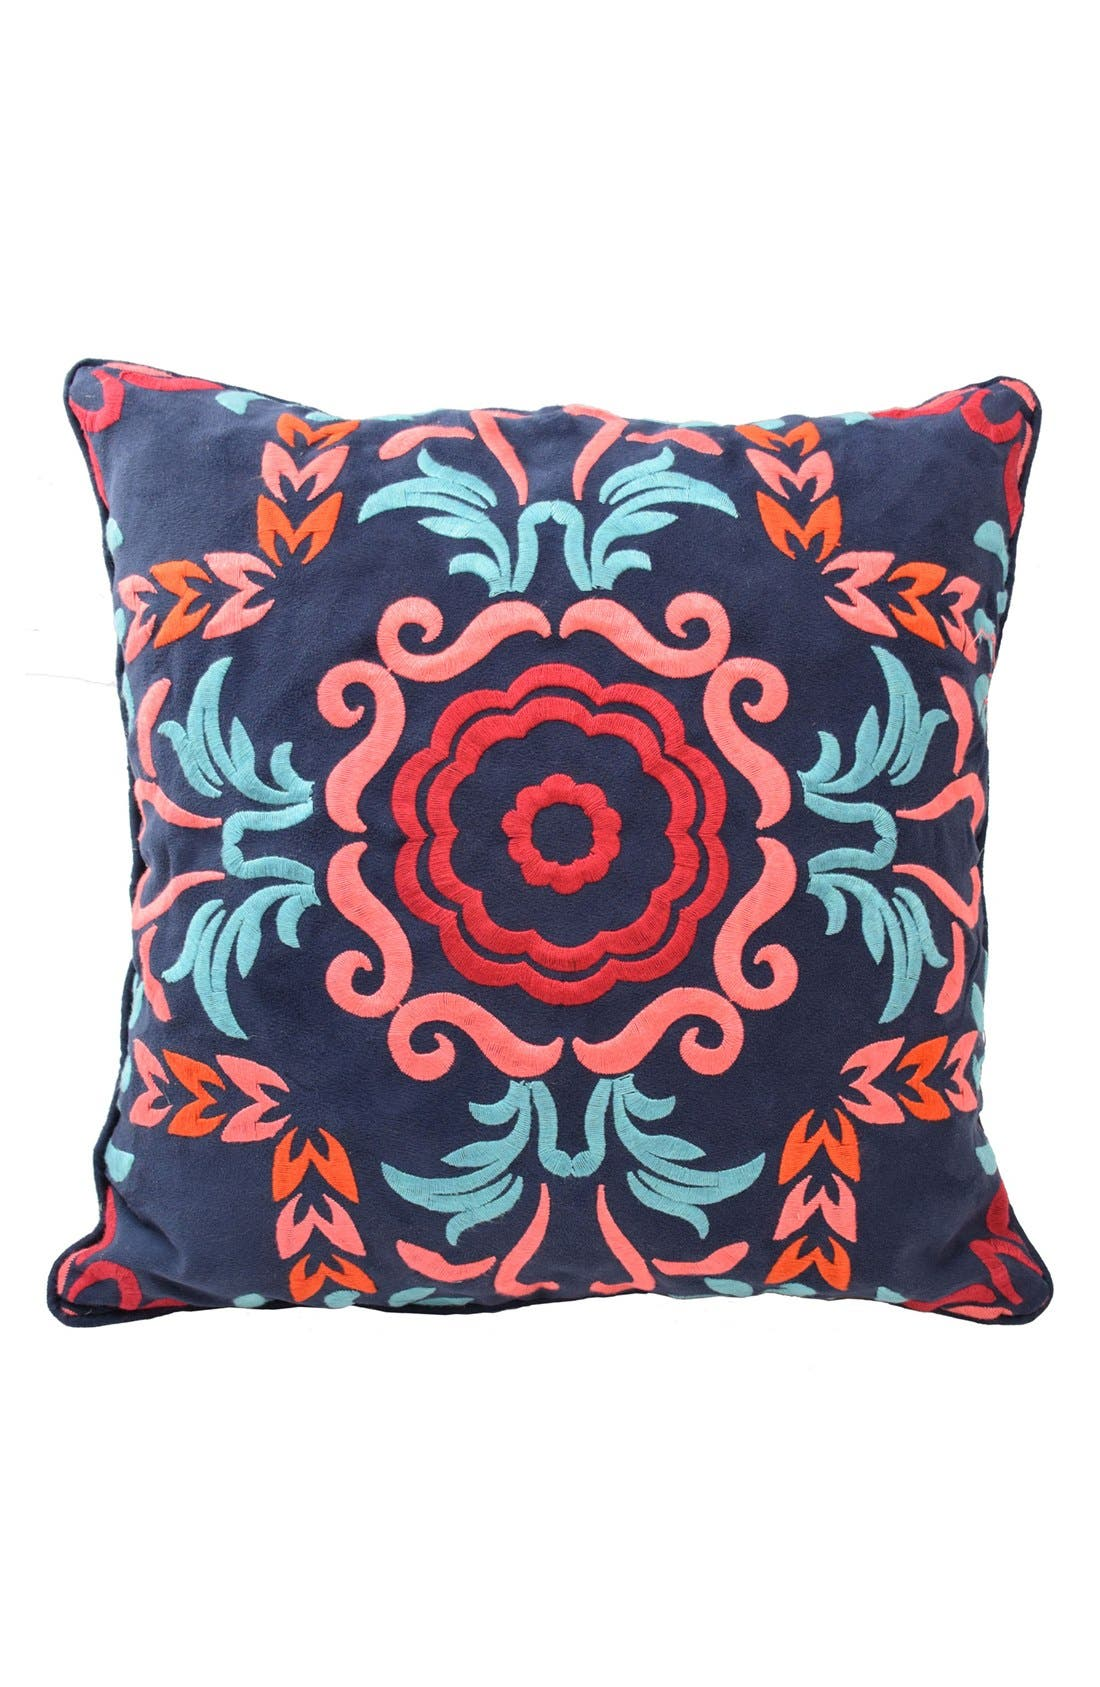 'Viva Mexico' Pillow,                             Main thumbnail 1, color,                             Navy Multi